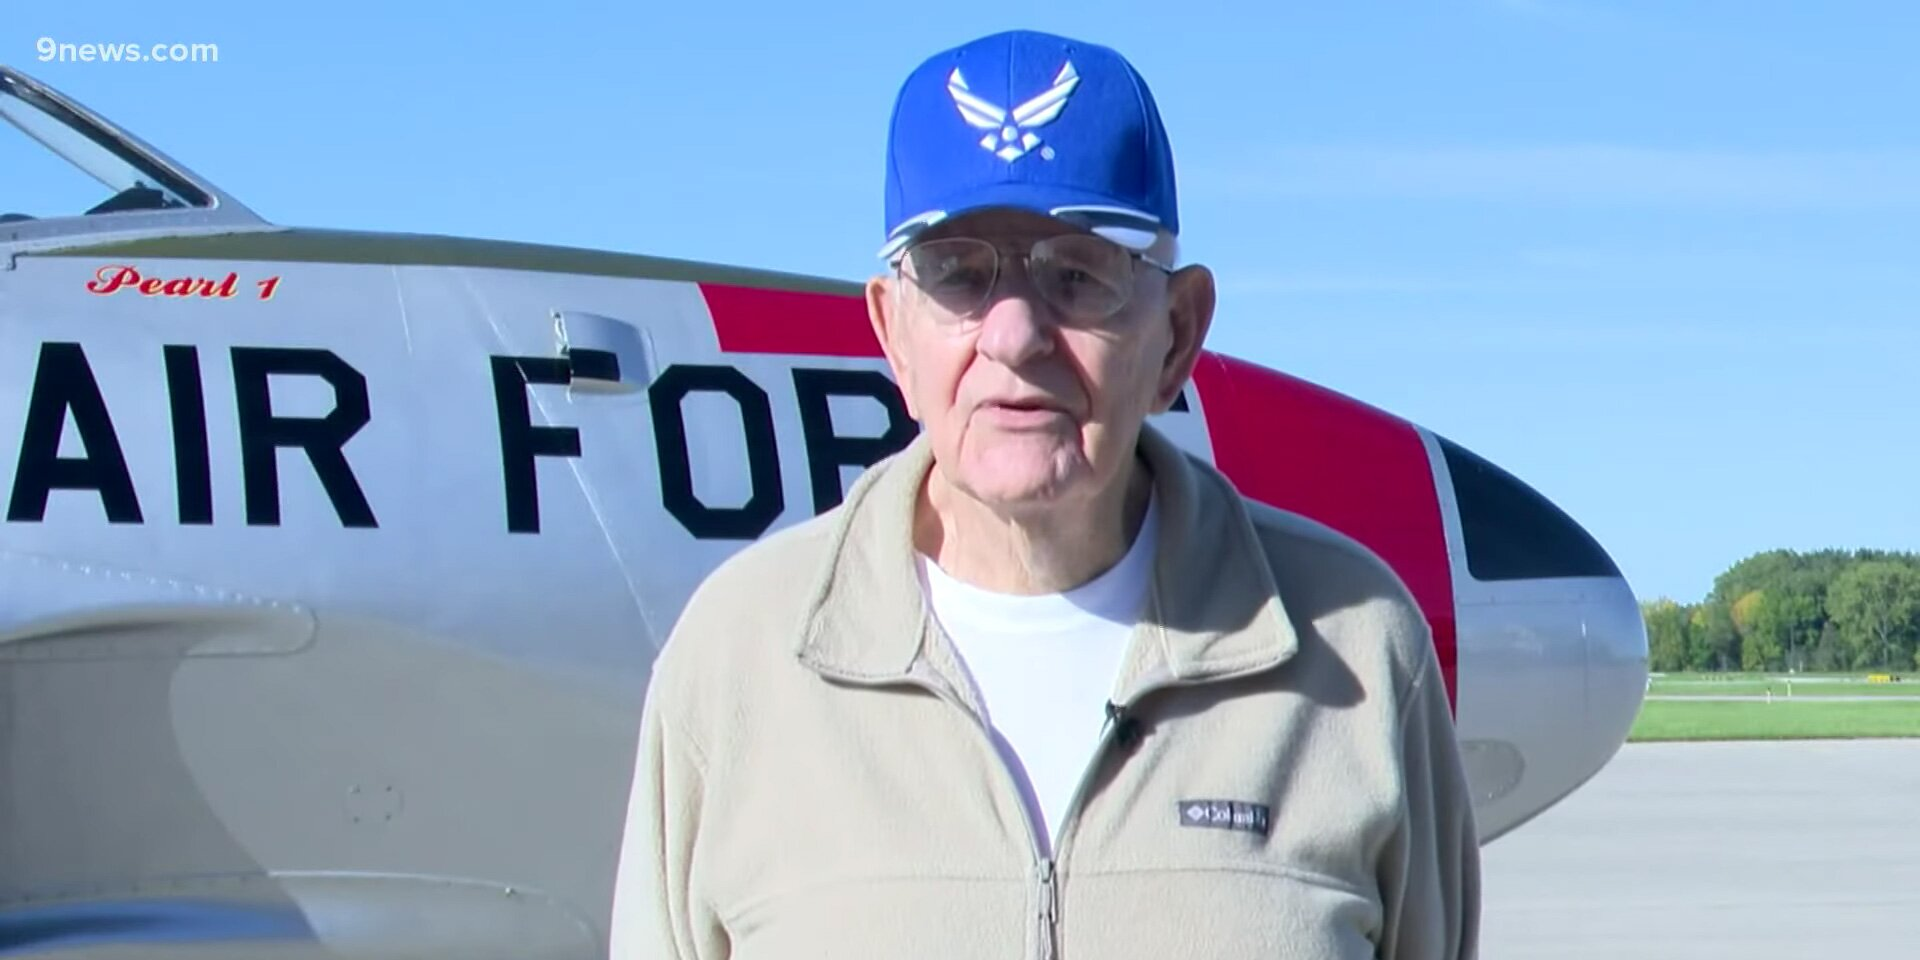 90-Year-Old Vietnam Vet Feels 'Like a Teenager All Over Again' Flying Fighter Jet 65 Years Later